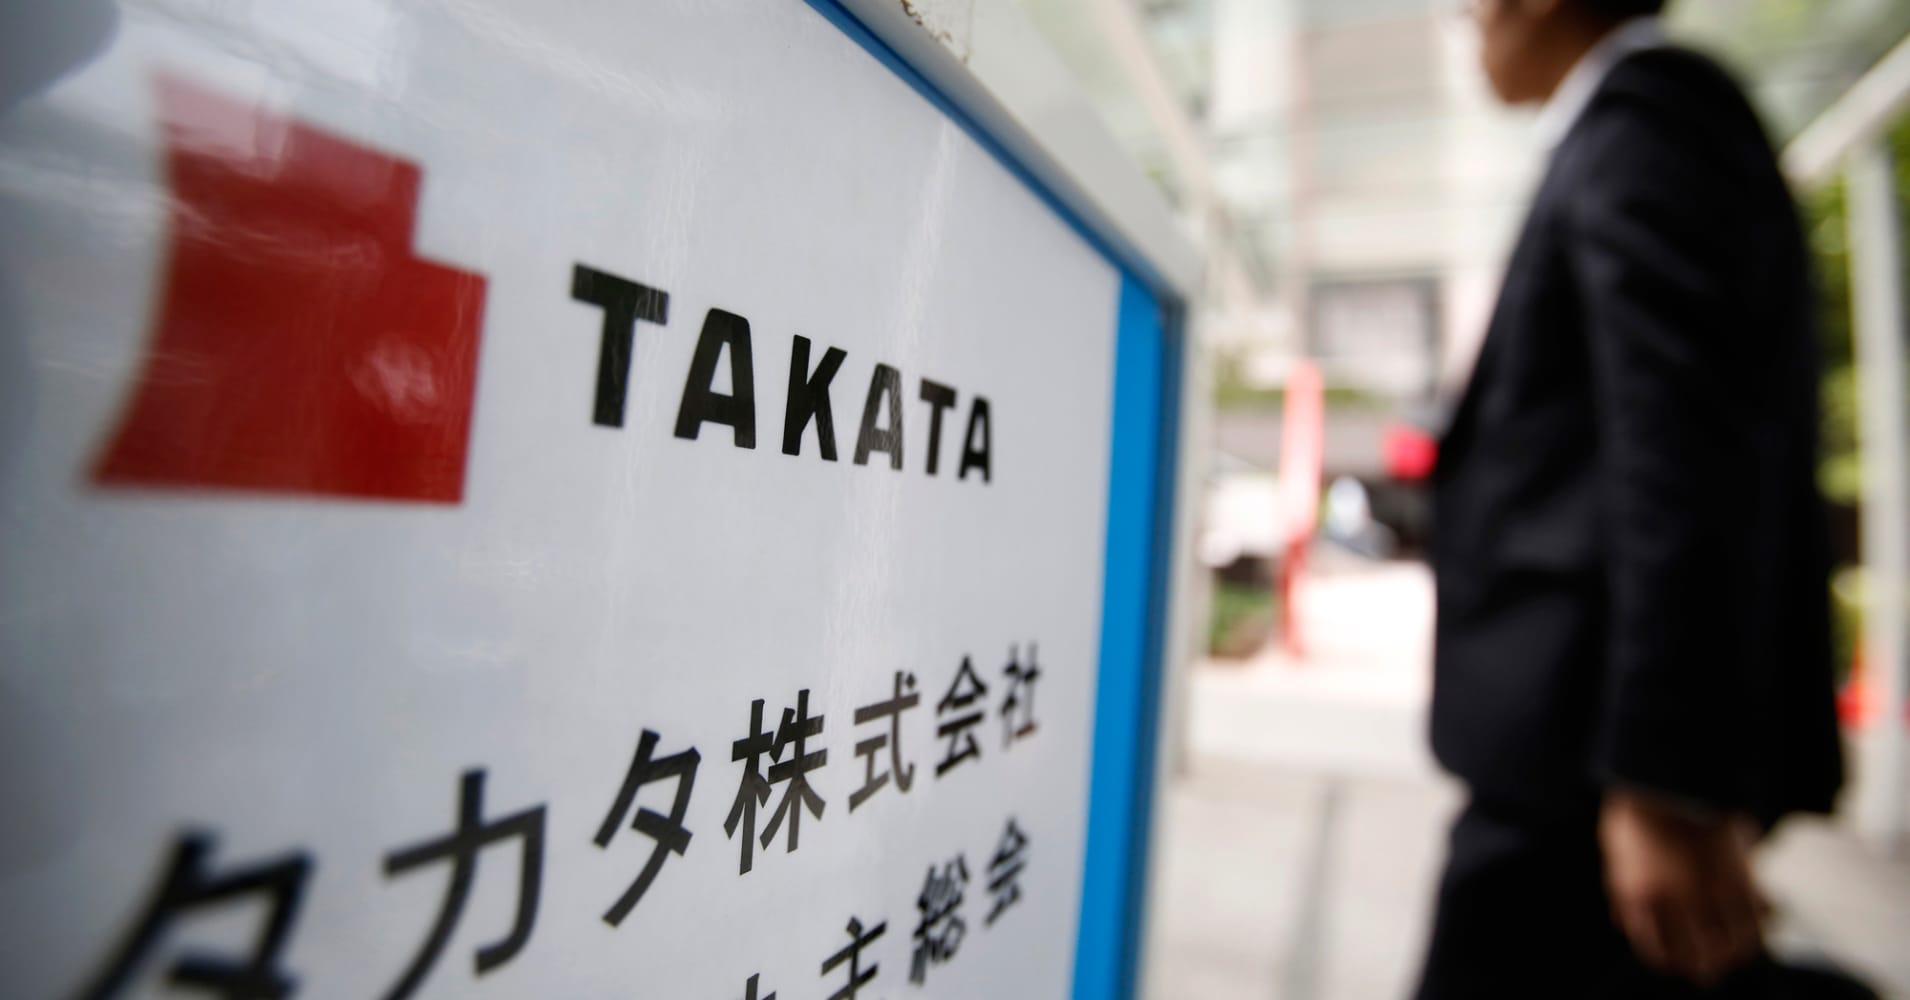 Takata's bankruptcy filing will leave others picking up the bill, analysts say